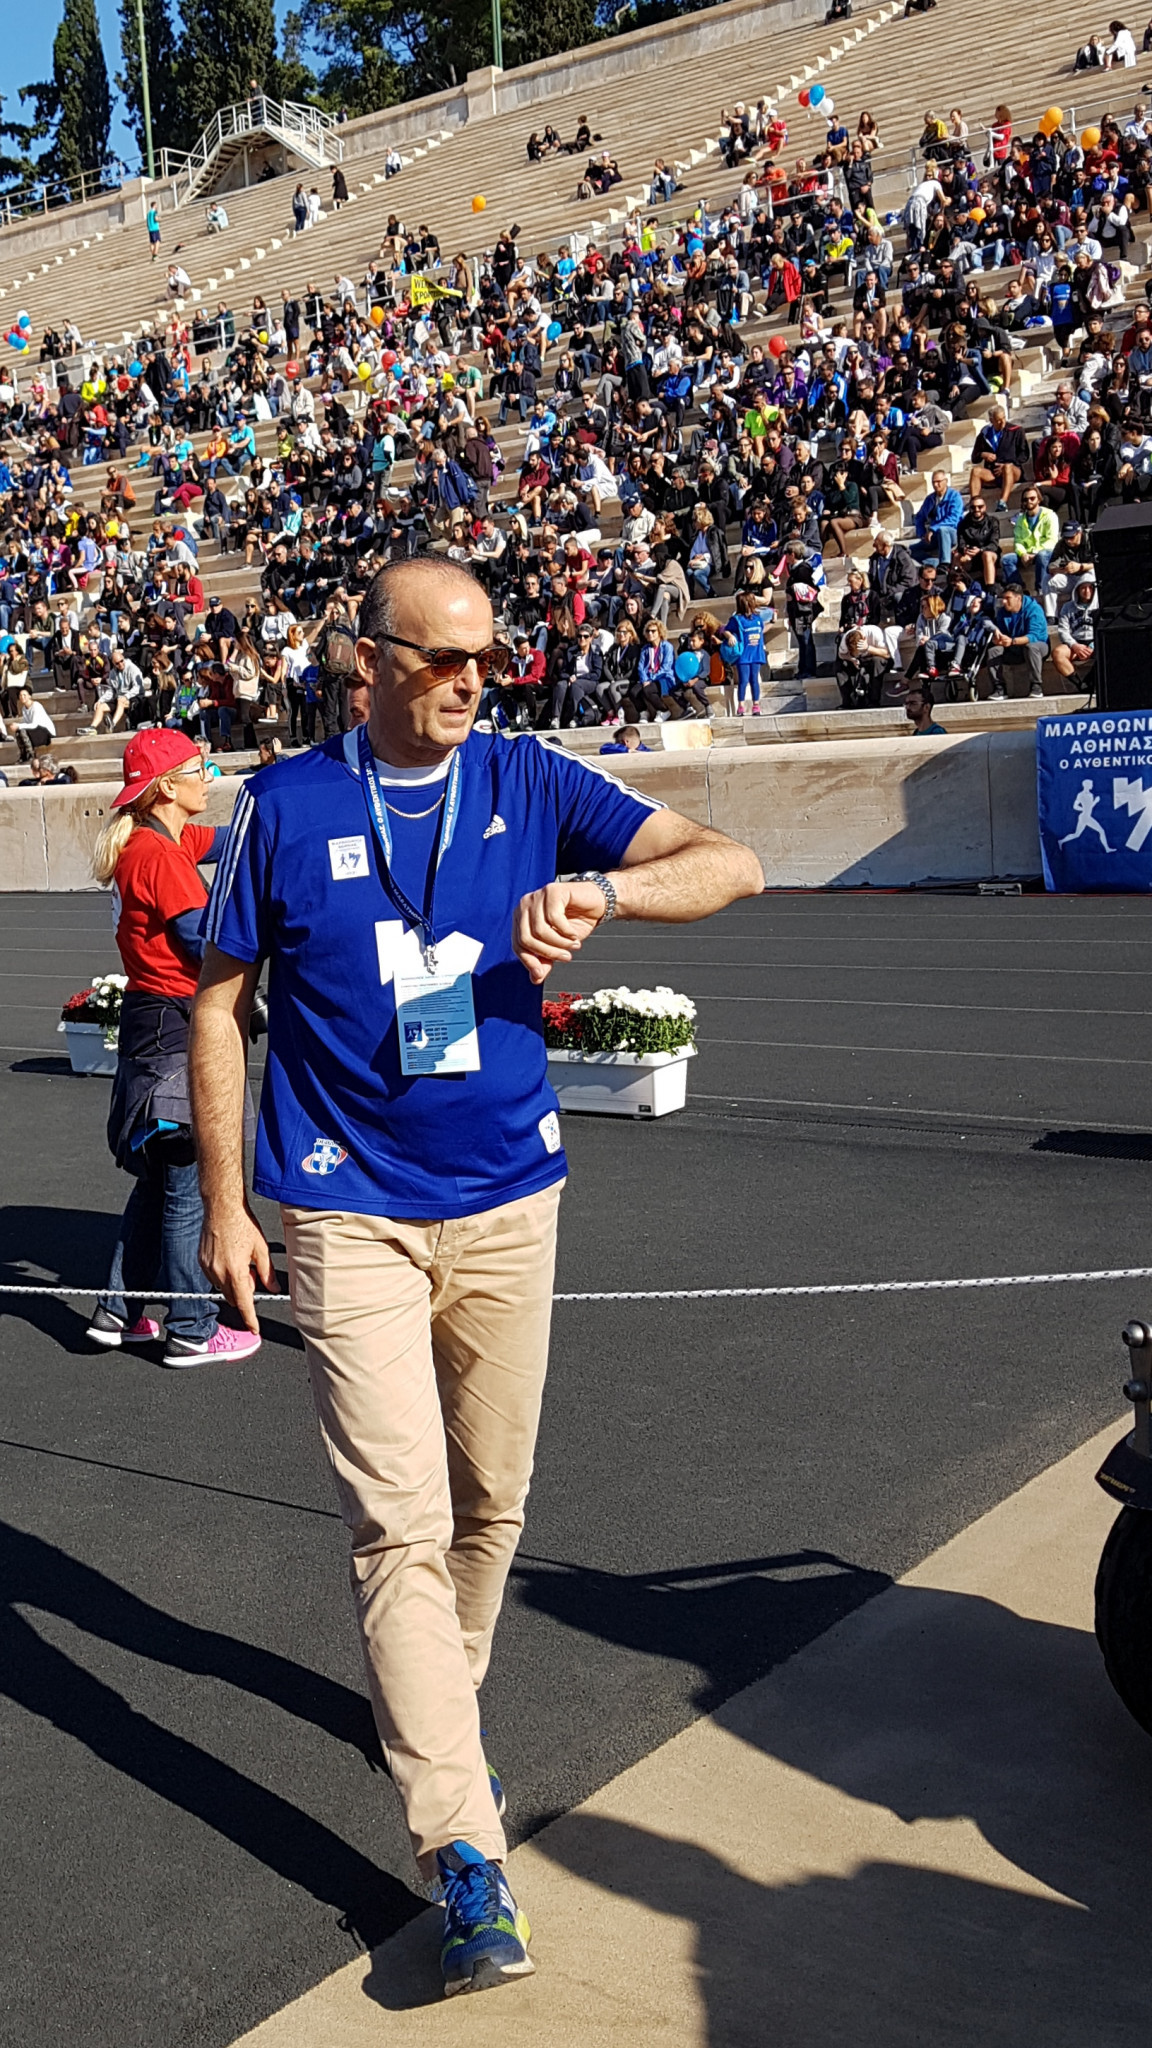 Athens Marathon general manager Makis Asimakopoulos plans to take advantage of the relatively low COVID-19 infection rate in Greece to ensure this year's race goes ahead as planned ©David Owen